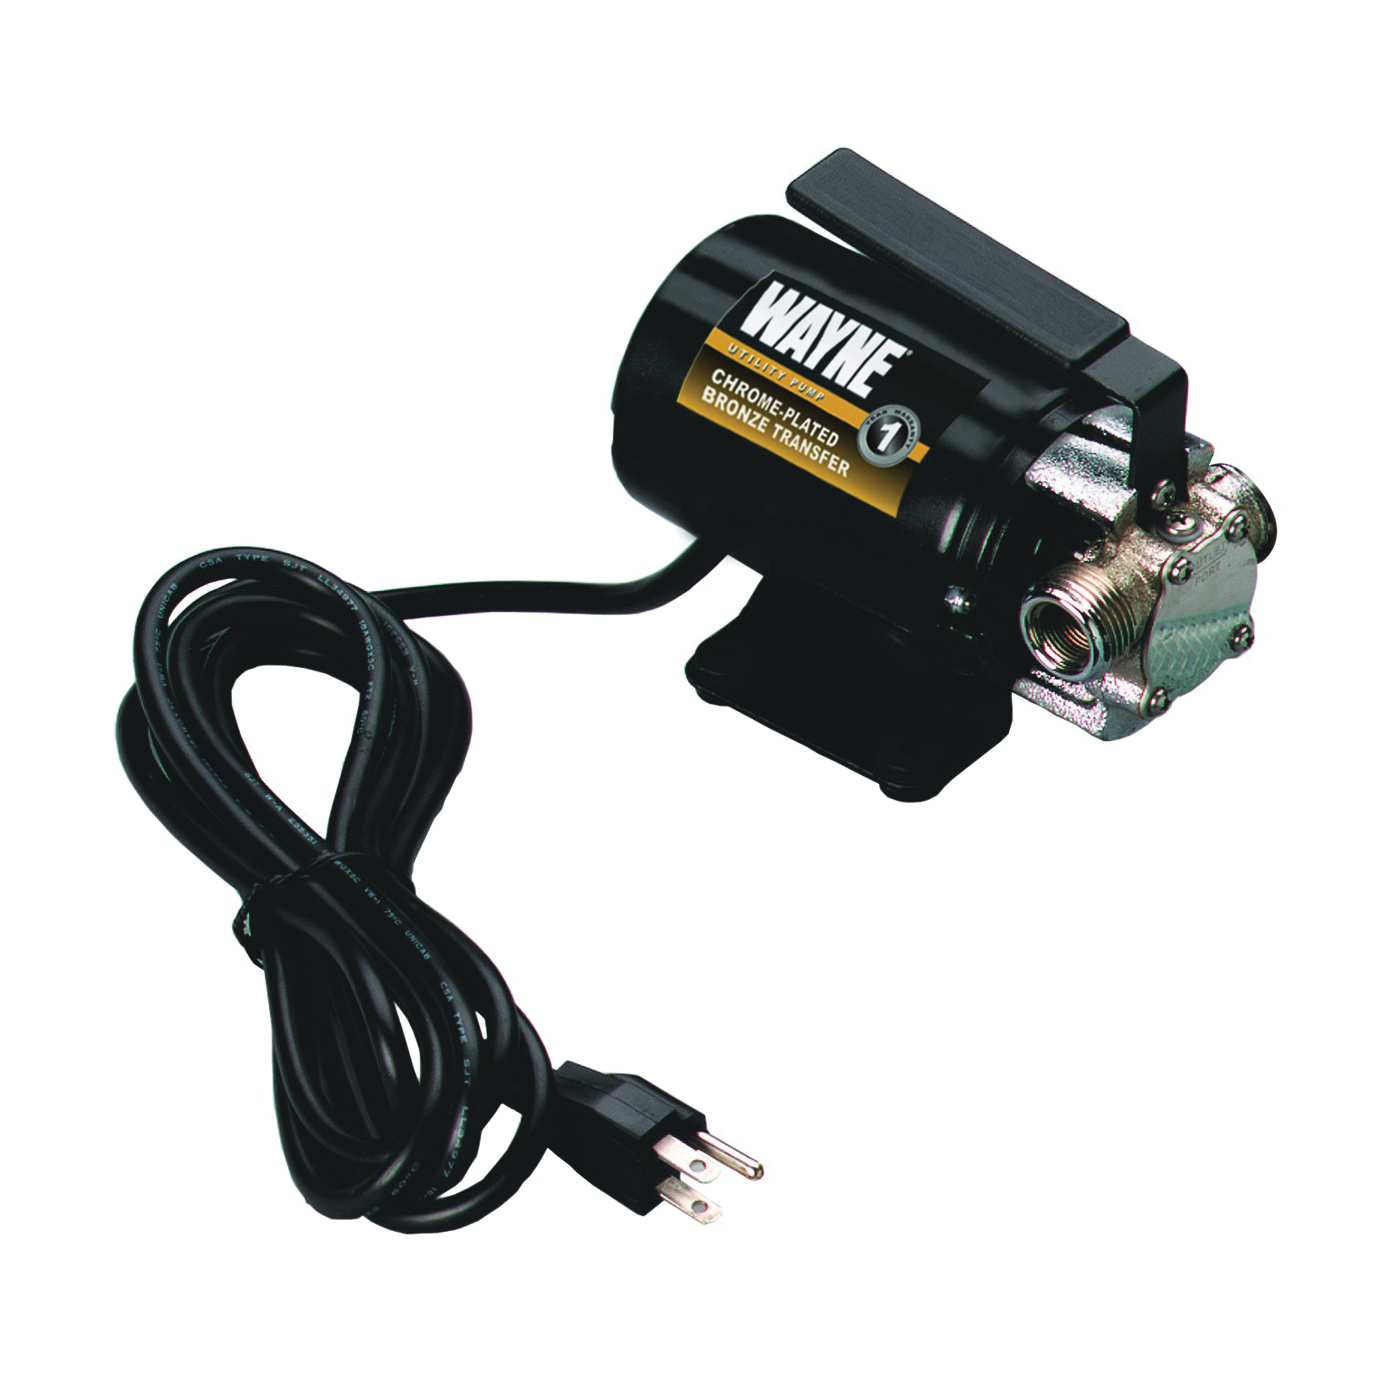 Picture of WAYNE PC2 Transfer Pump, 2 A, 115 V, 0.1 hp, 3/4 in Outlet, 300 gph, Metal